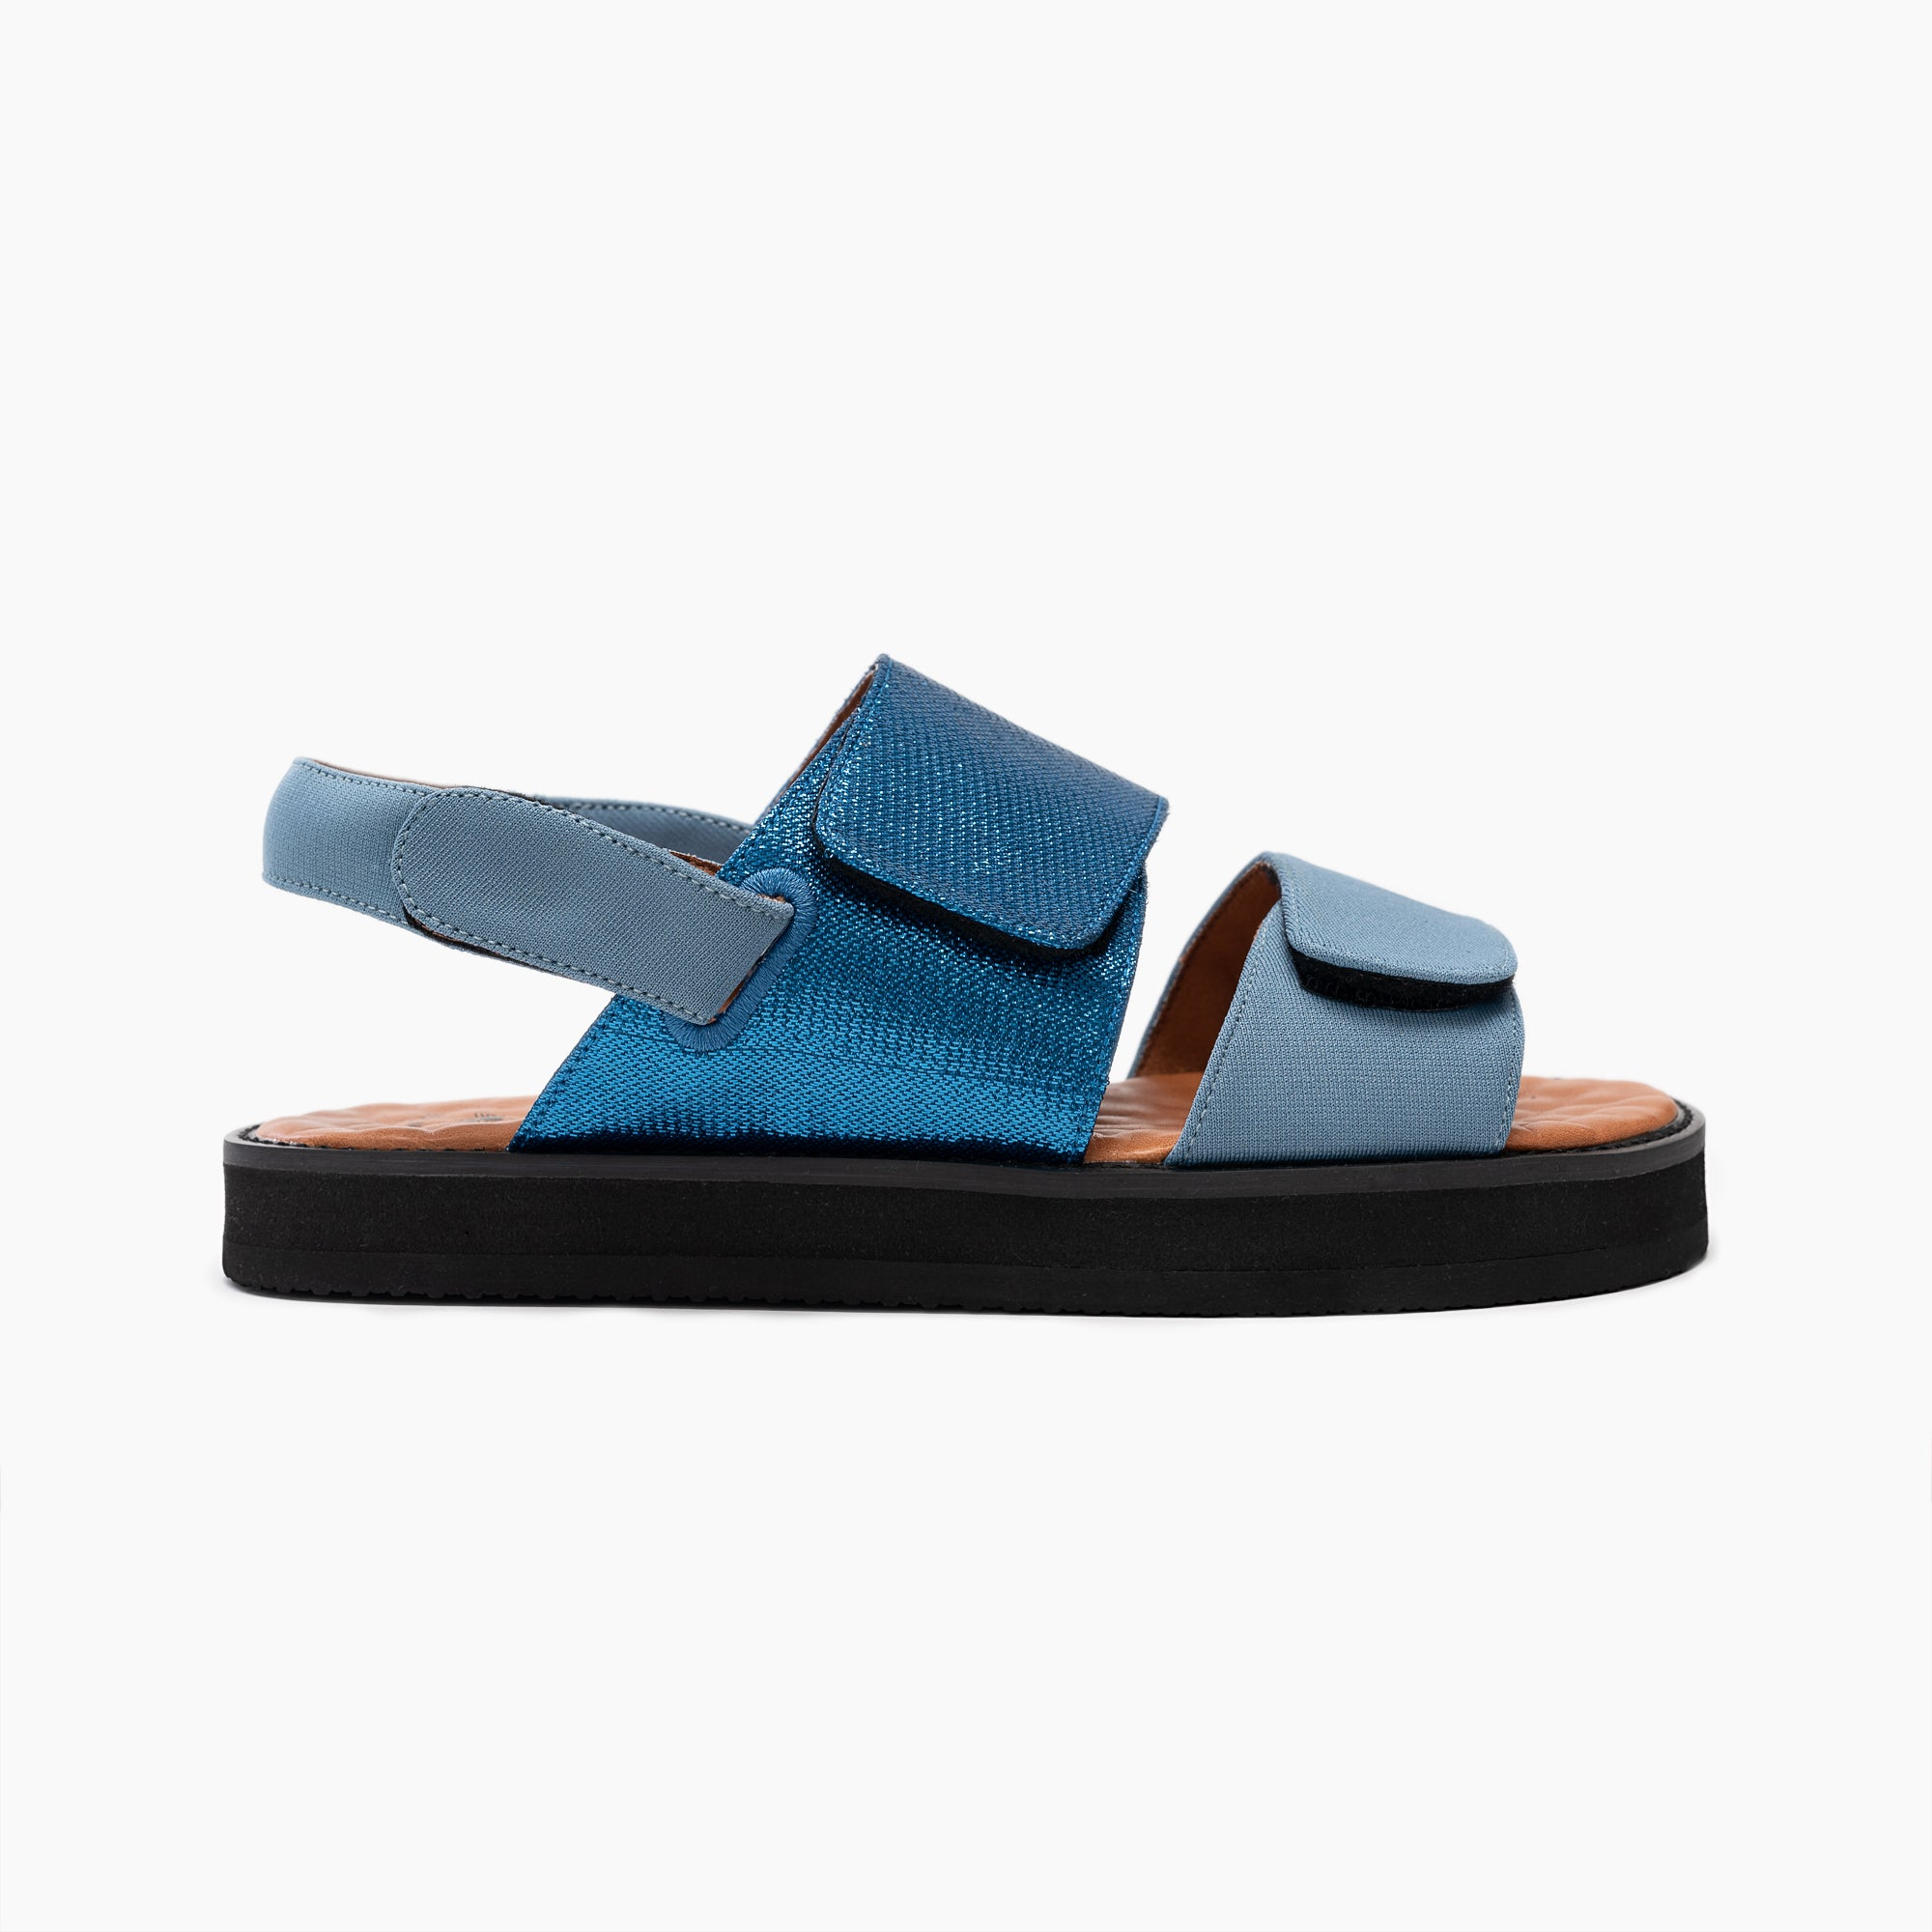 ONNA STRAP SANDAL - Insecta Shoes Brasil